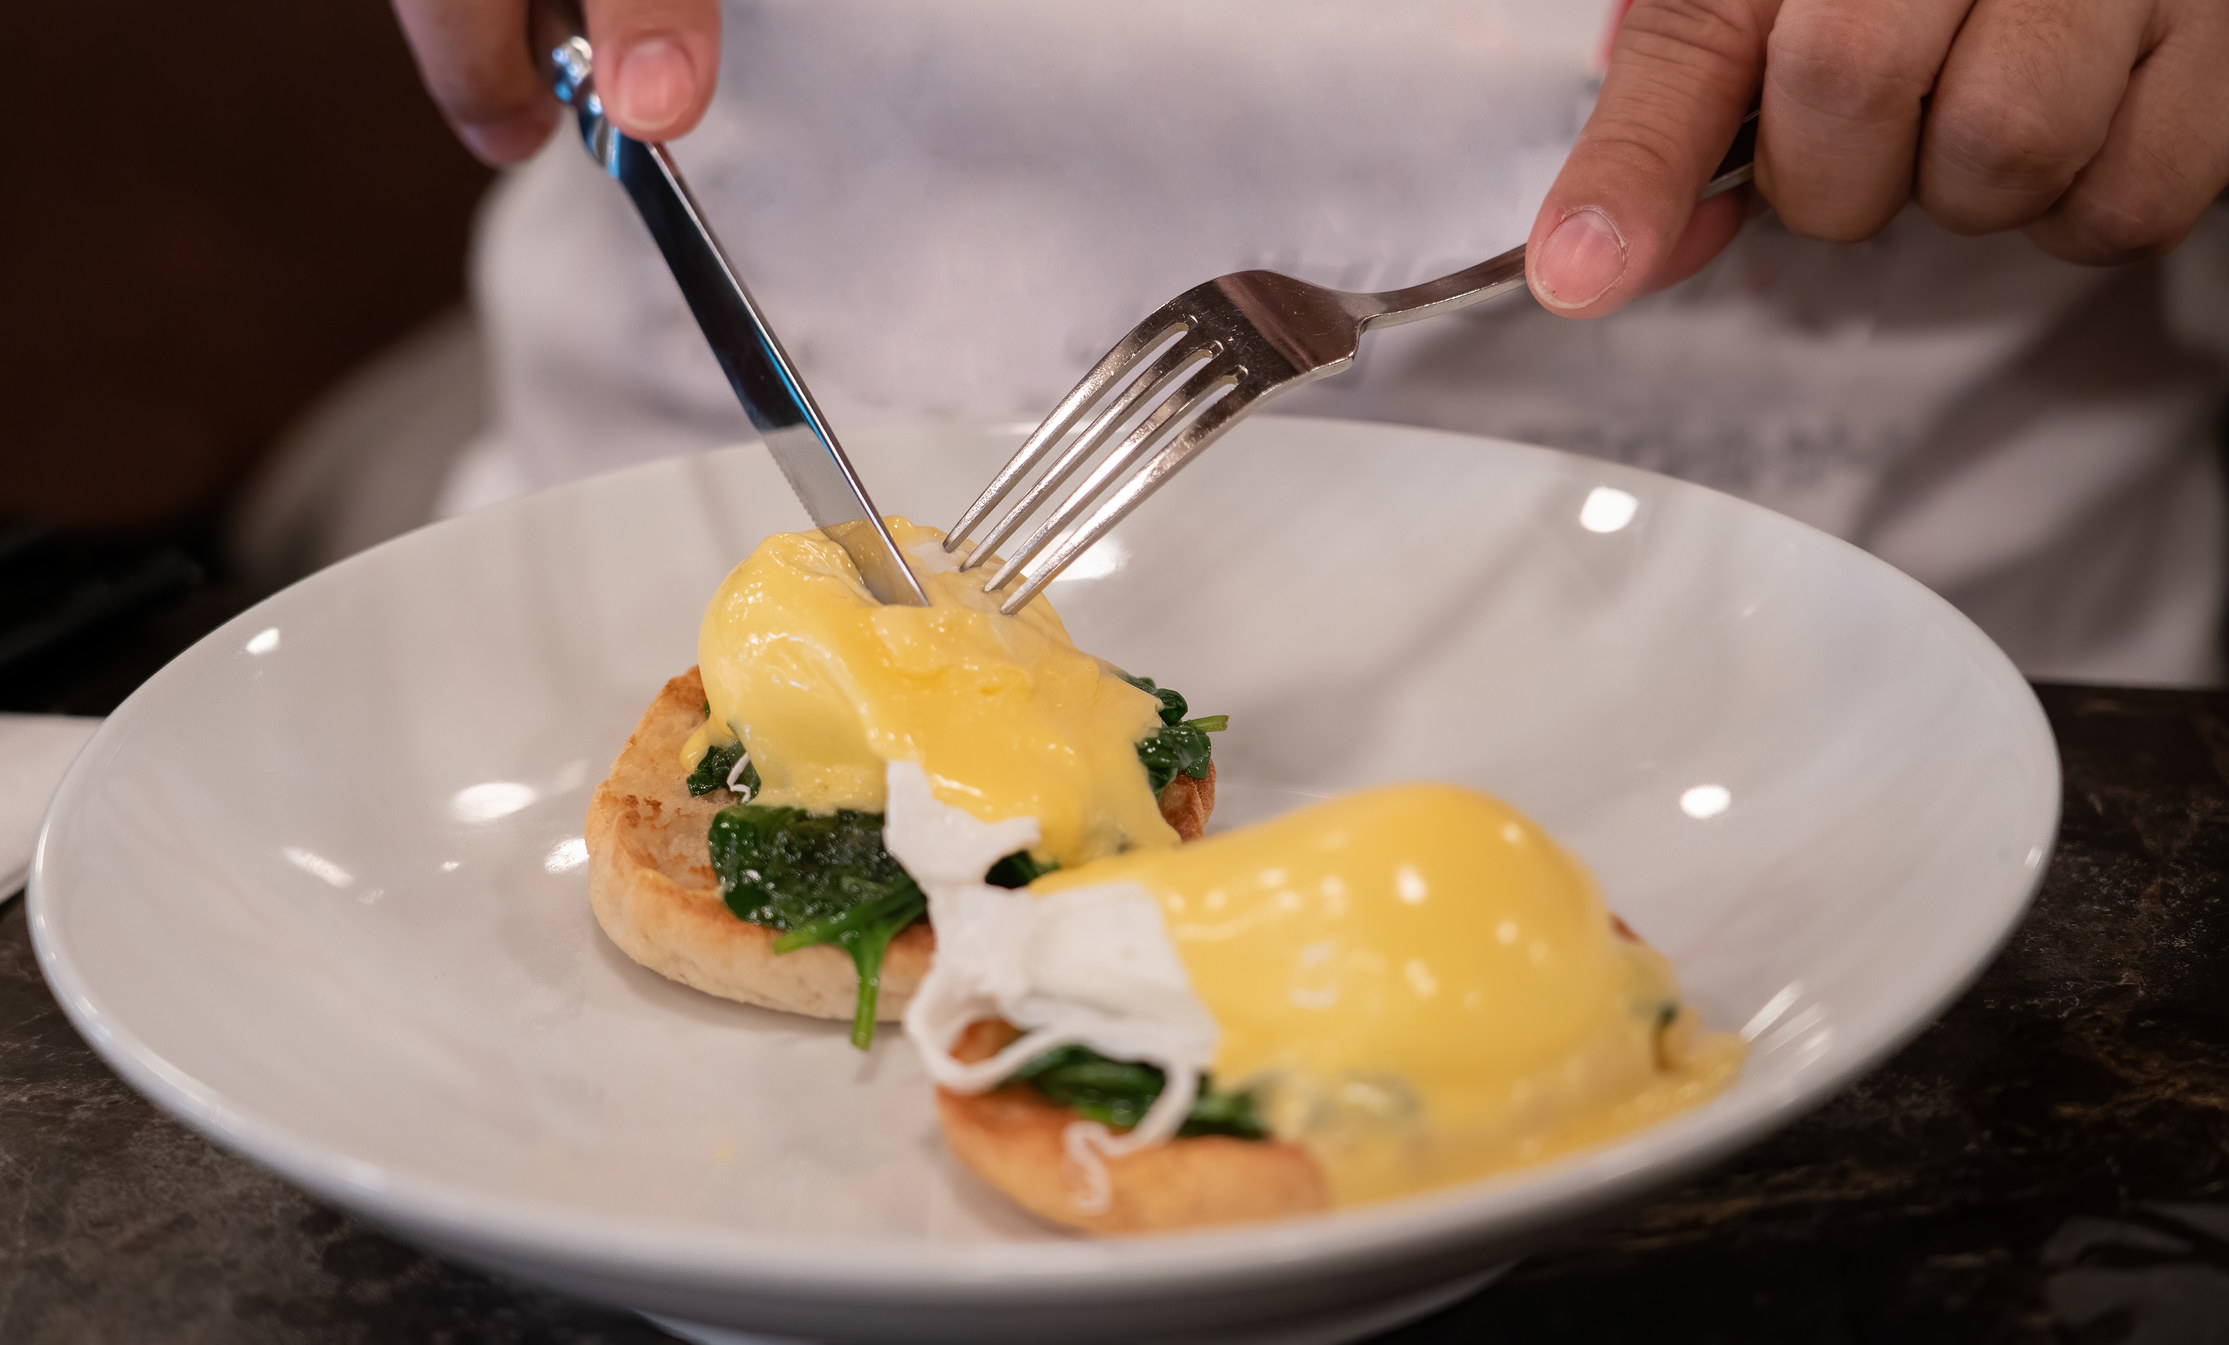 Someone cutting into a poached egg with hollandaise sauce